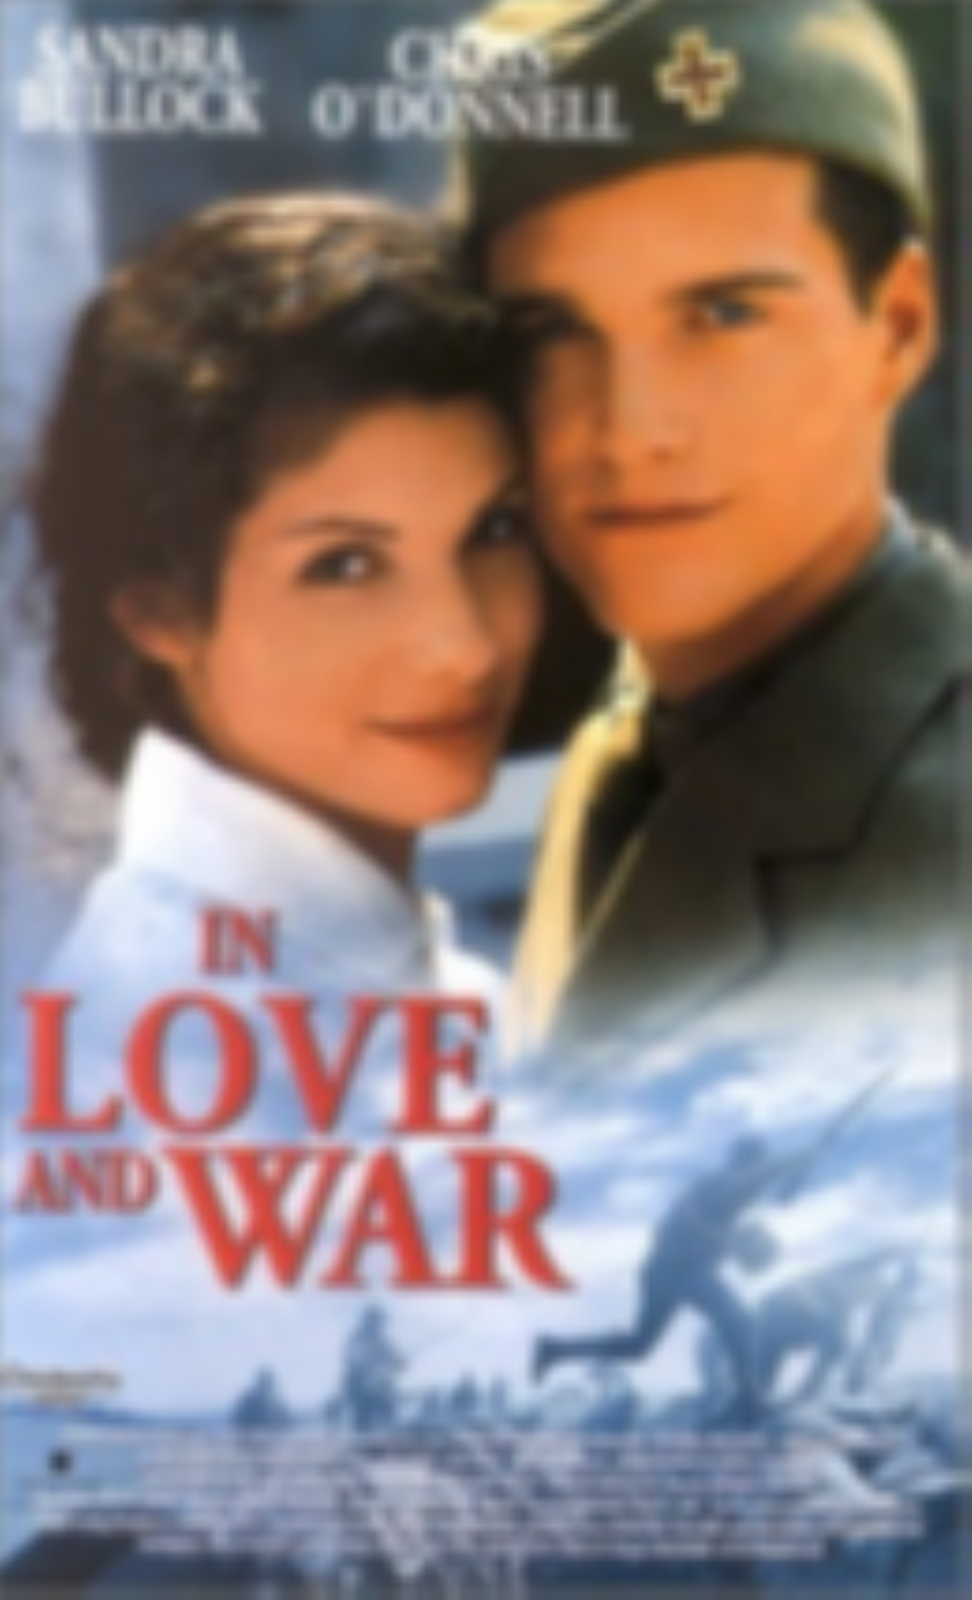 In Love and War Vhs